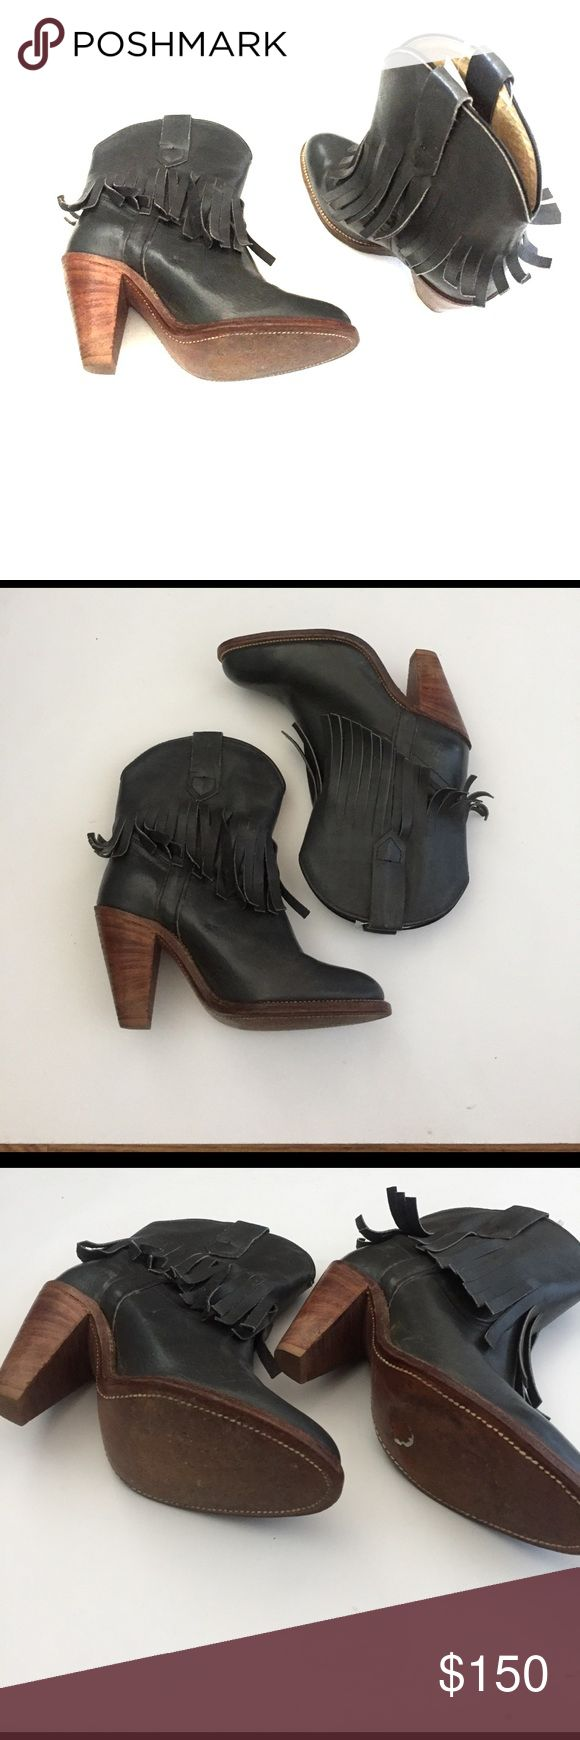 """Fyre Leather Booties- Good Condition Frye Ilana Fringe Short Boot- Grey Leather  Leather Grey Booties with Fringe  Pull-on construction Wrap around fringe detail Stacked chunky heel Leather lined Heel Height: 3 1/2"""" Shaft Height: 7"""" Circumference: 14"""" Fit: True to Size Frye Shoes Ankle Boots & Booties"""